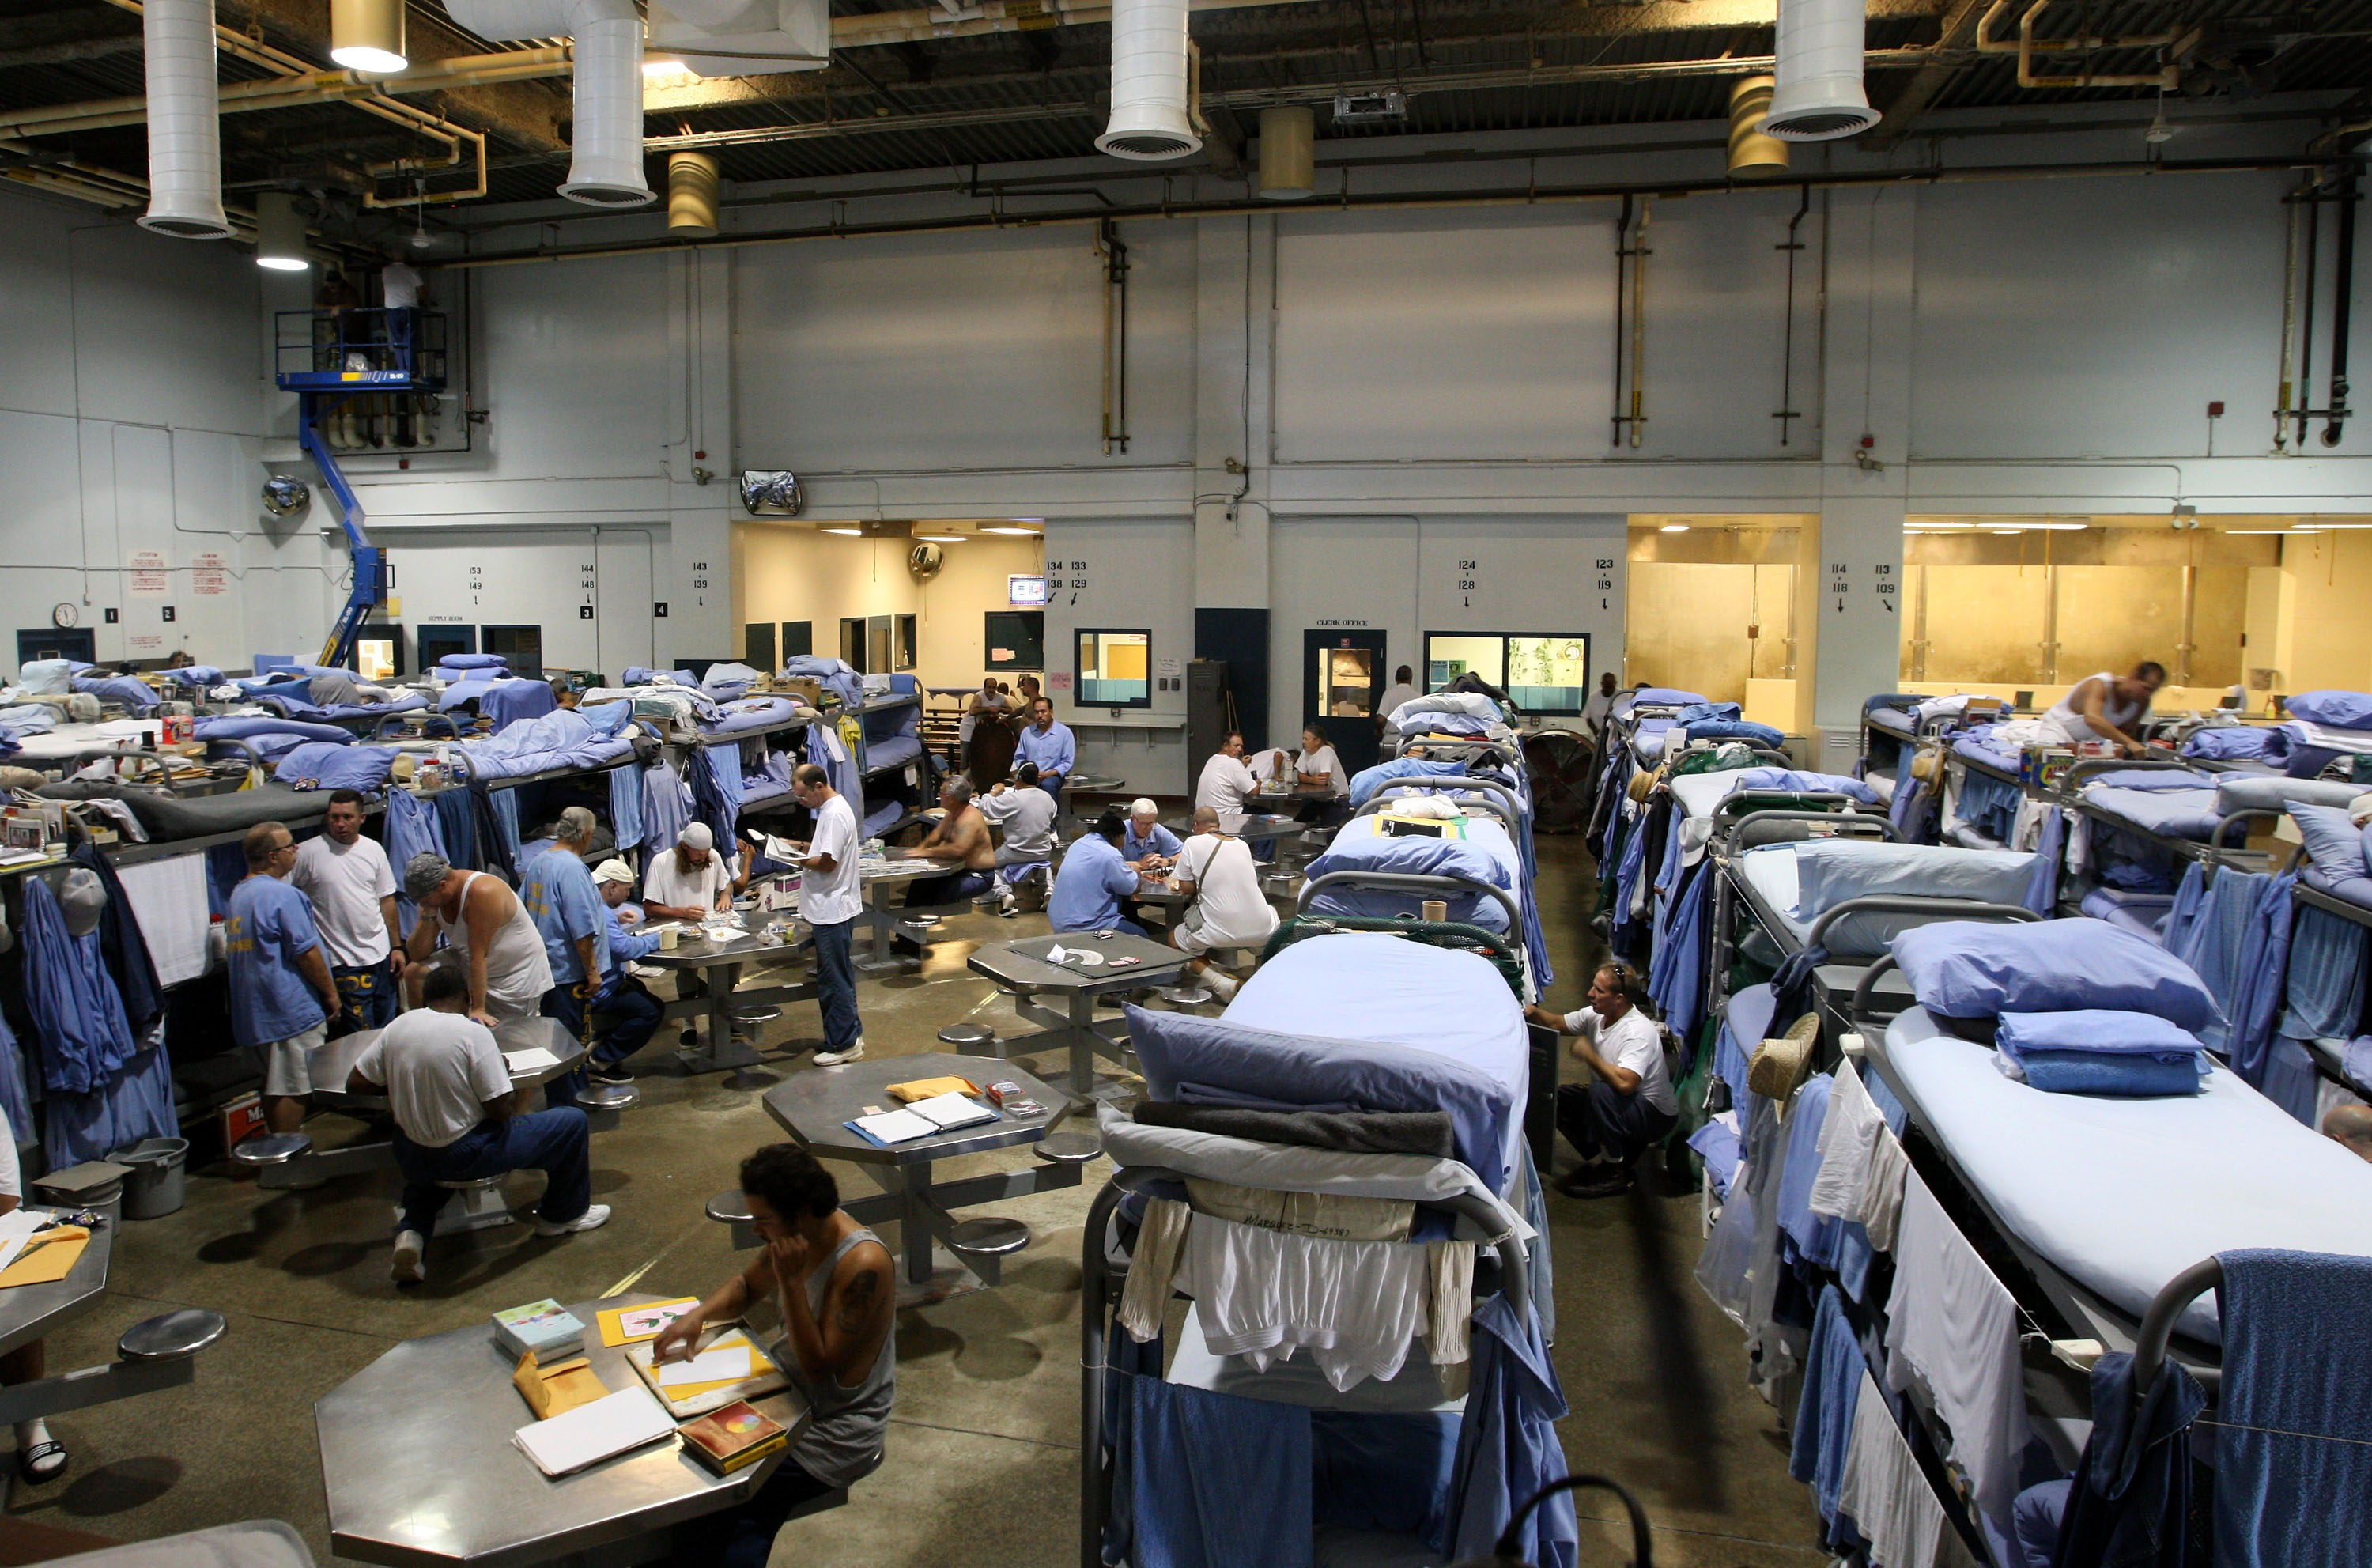 15 Years After Three Strikes Law Calif Prisons Packed